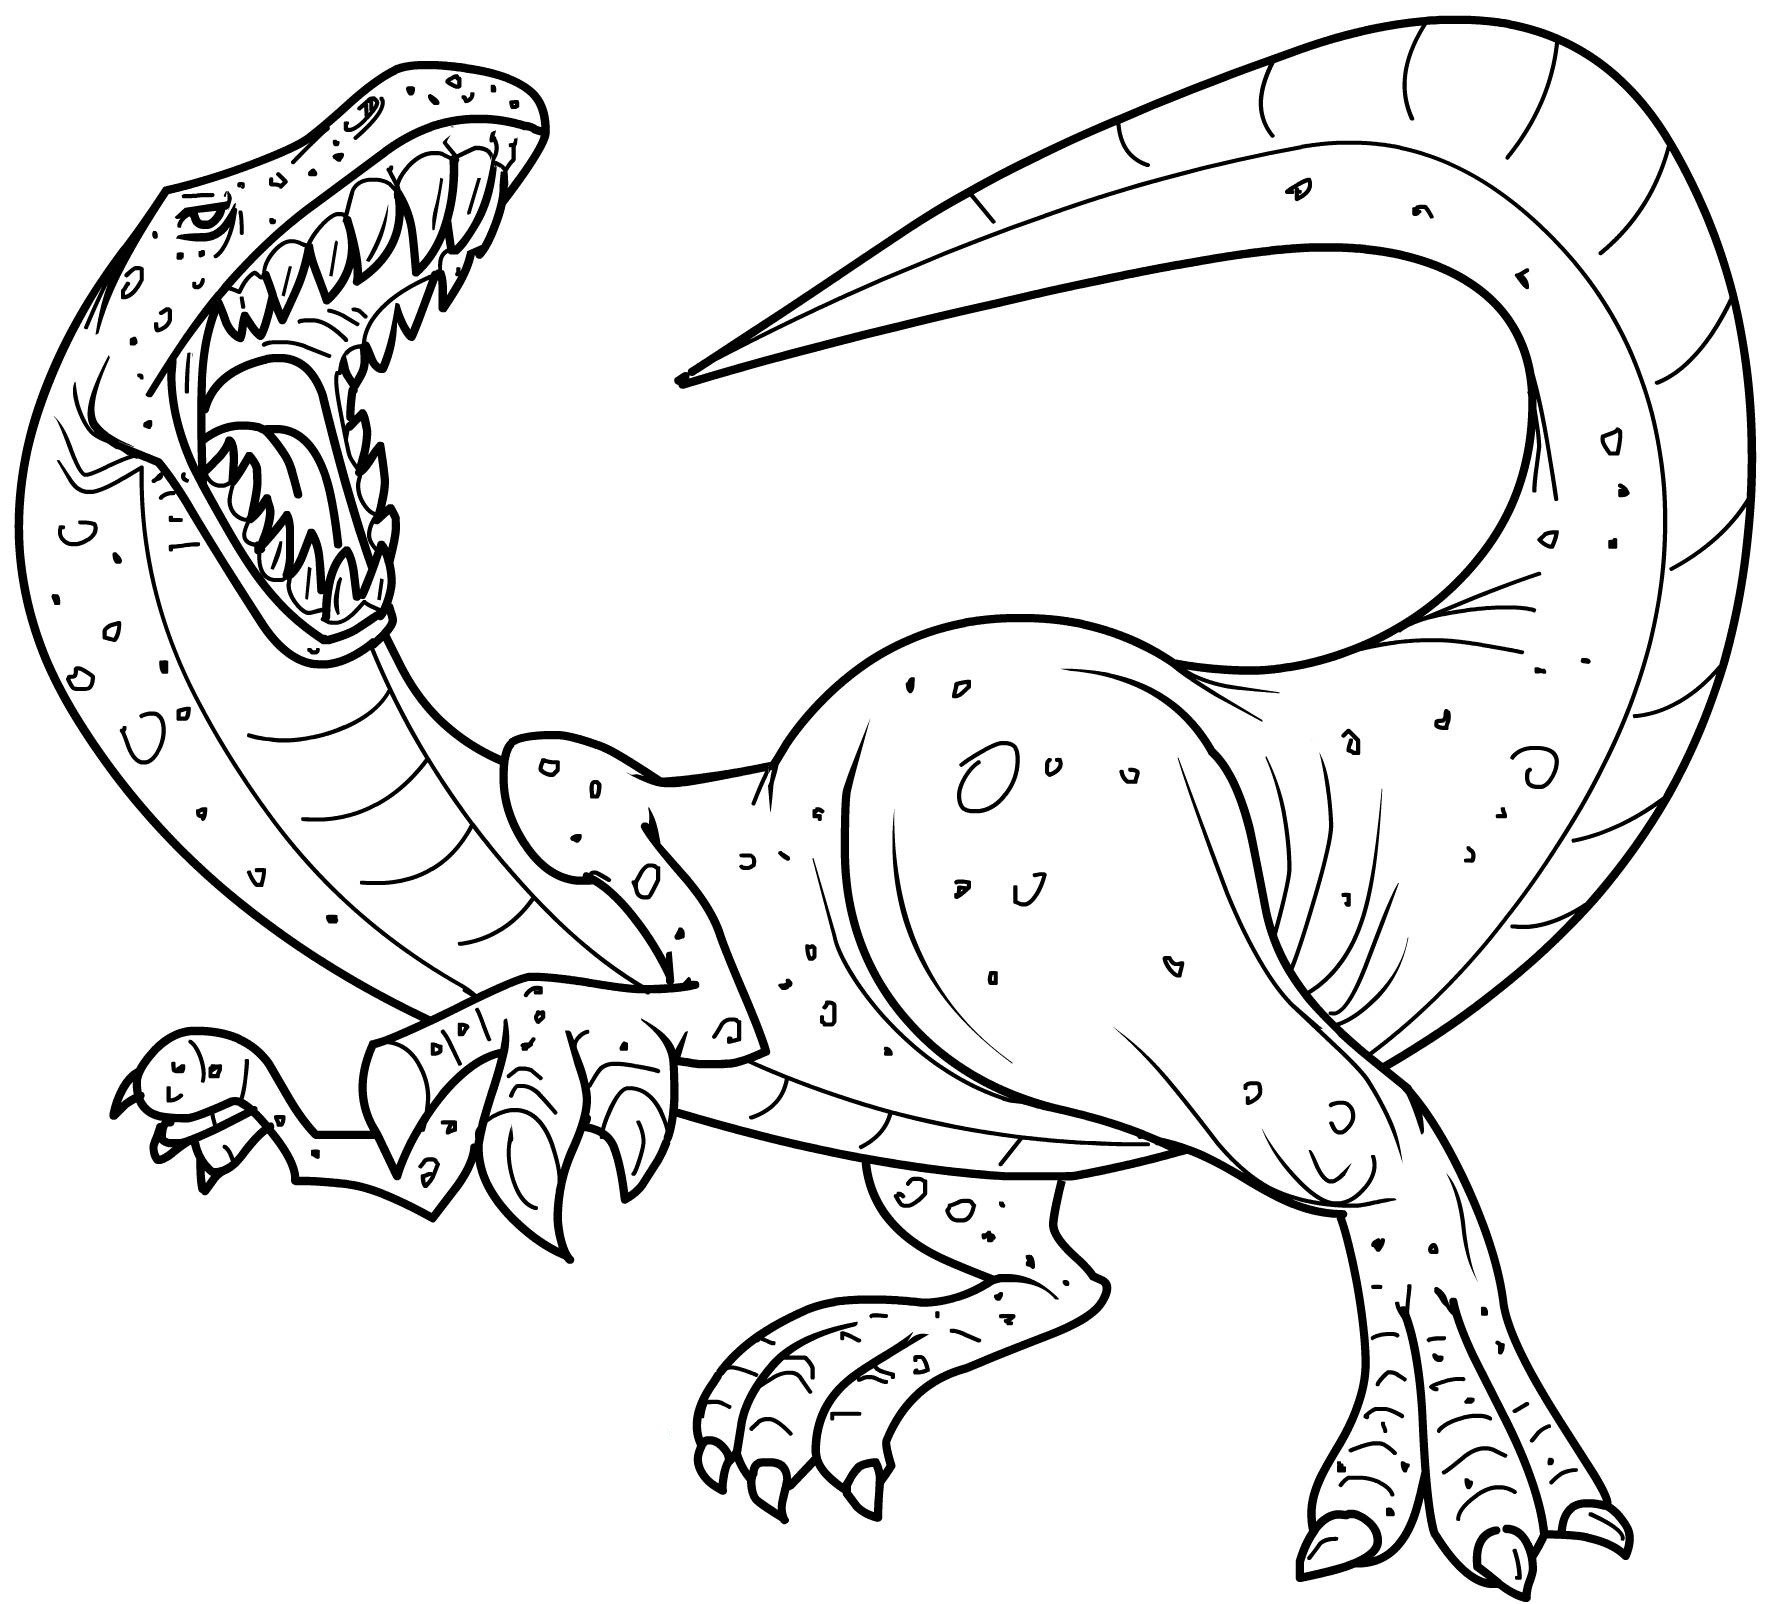 free printable dinosaur coloring pages - dinosaur